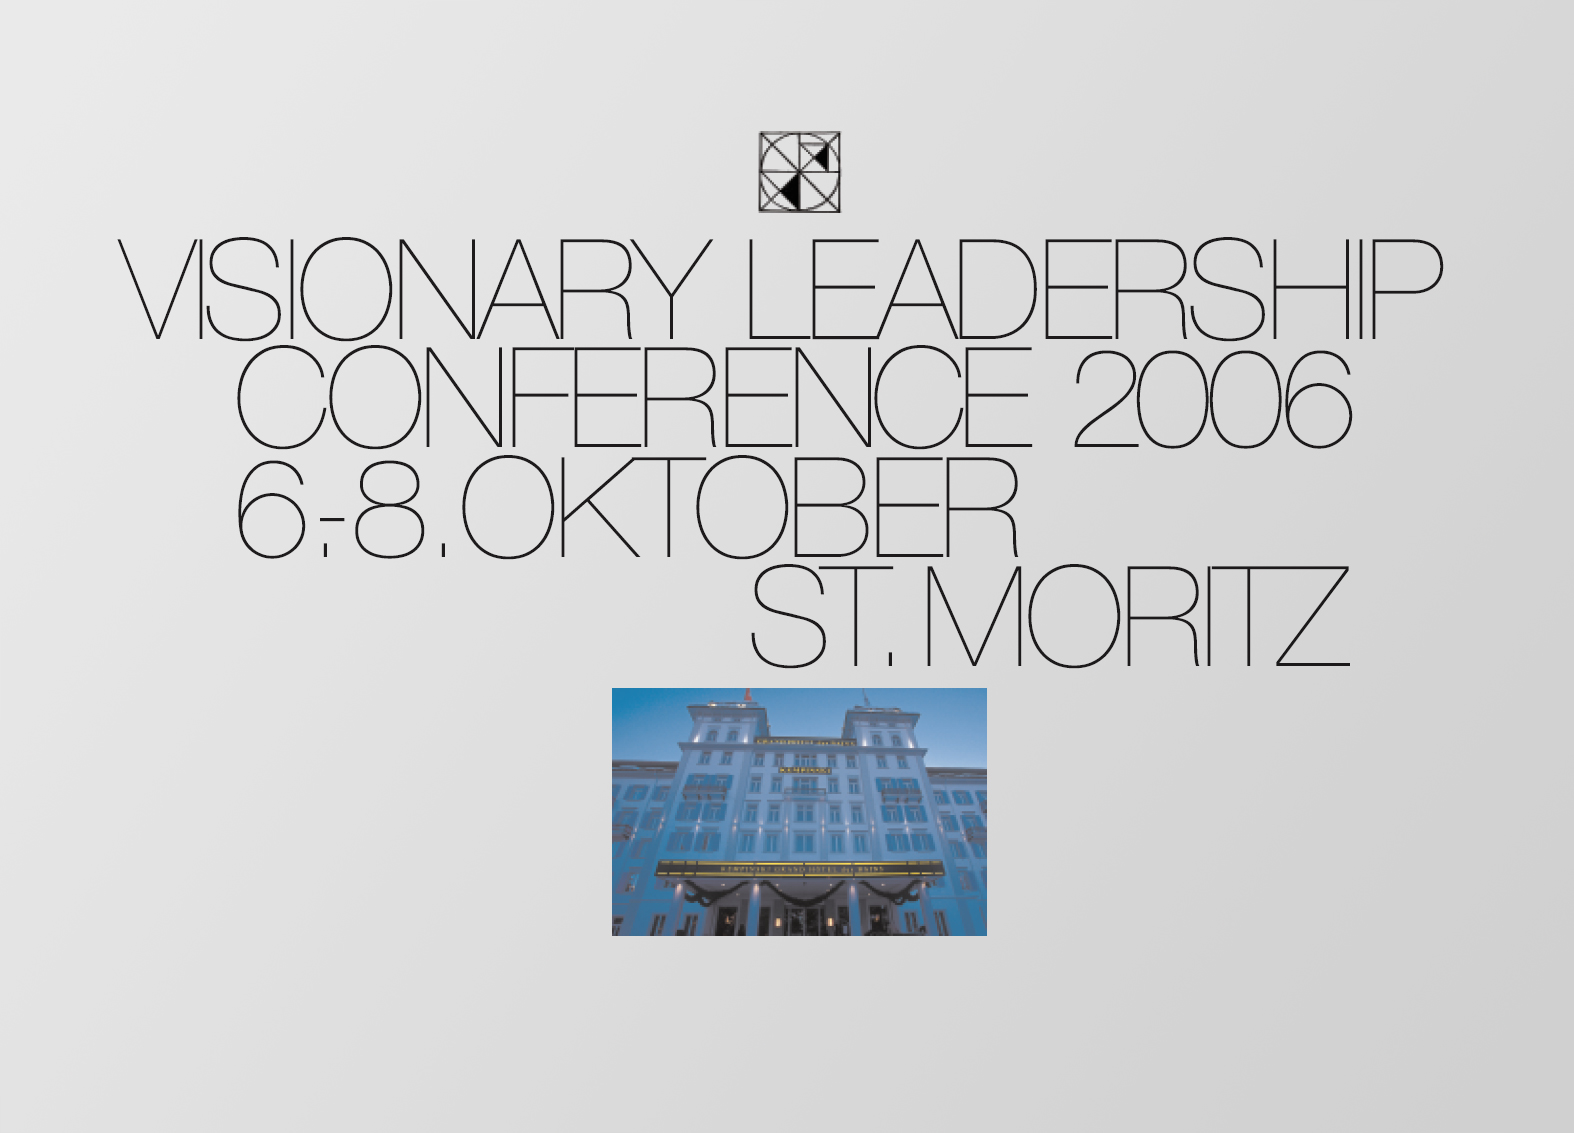 VISIONARY LEADERSHIP CONFERENCE 2006, ST. MORITZ